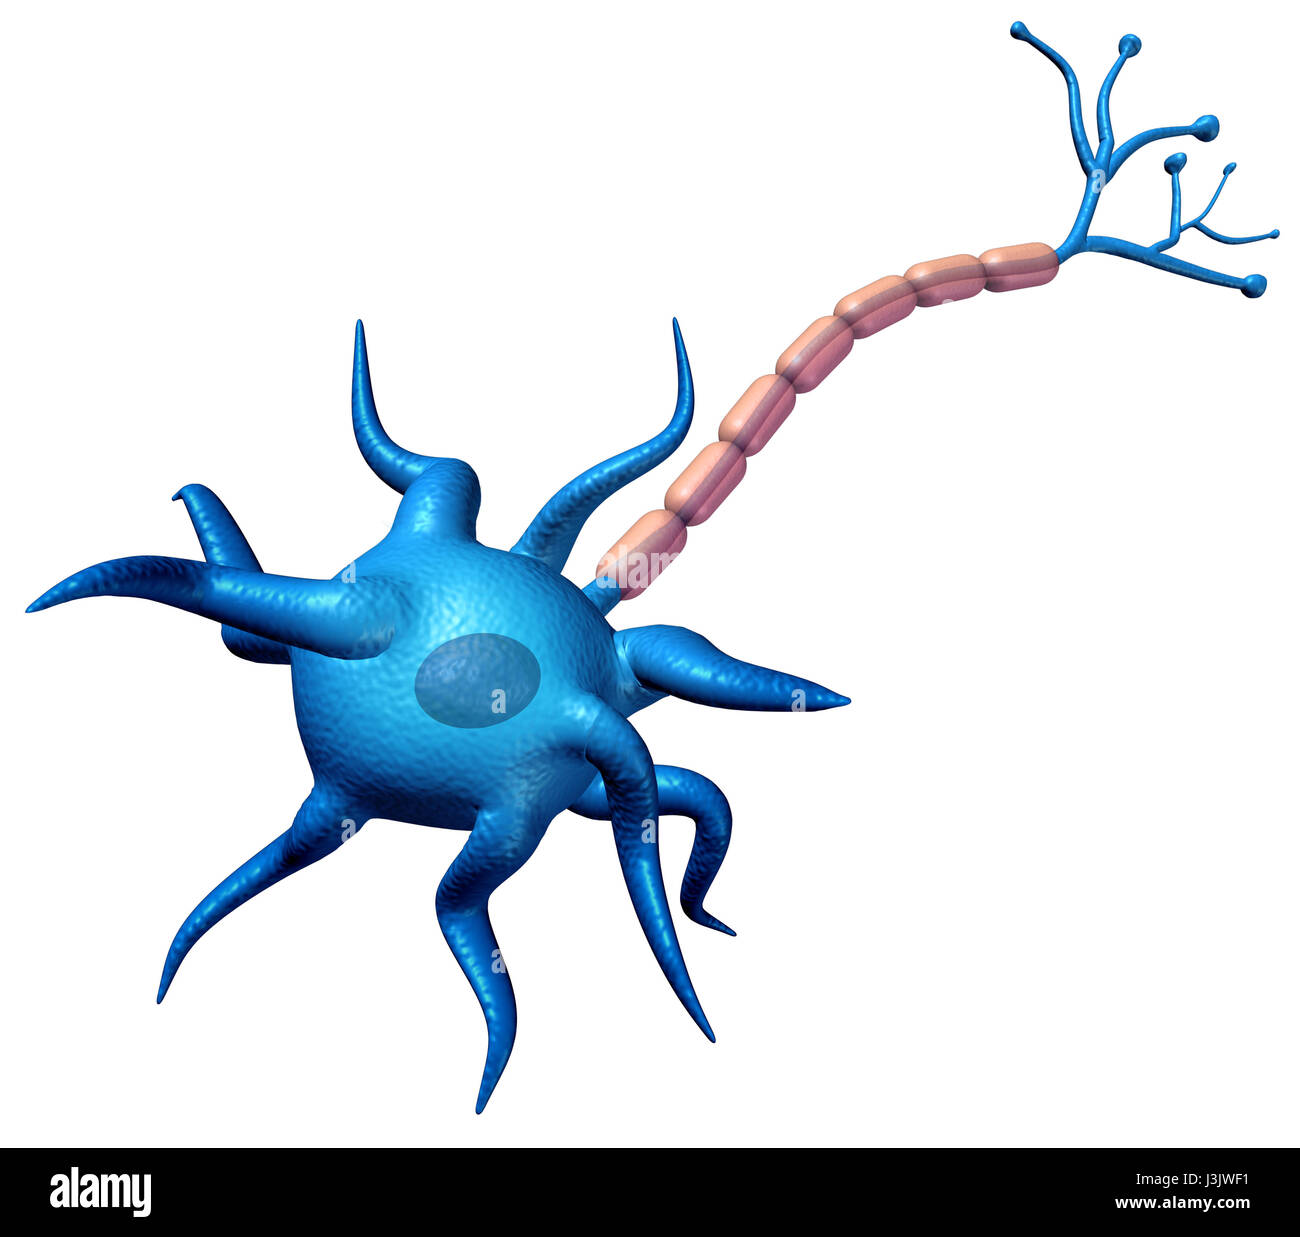 Synapse neuron body anatomy isolated on a white background with axon cell body and myelin sheath as a 3D illustration. - Stock Image